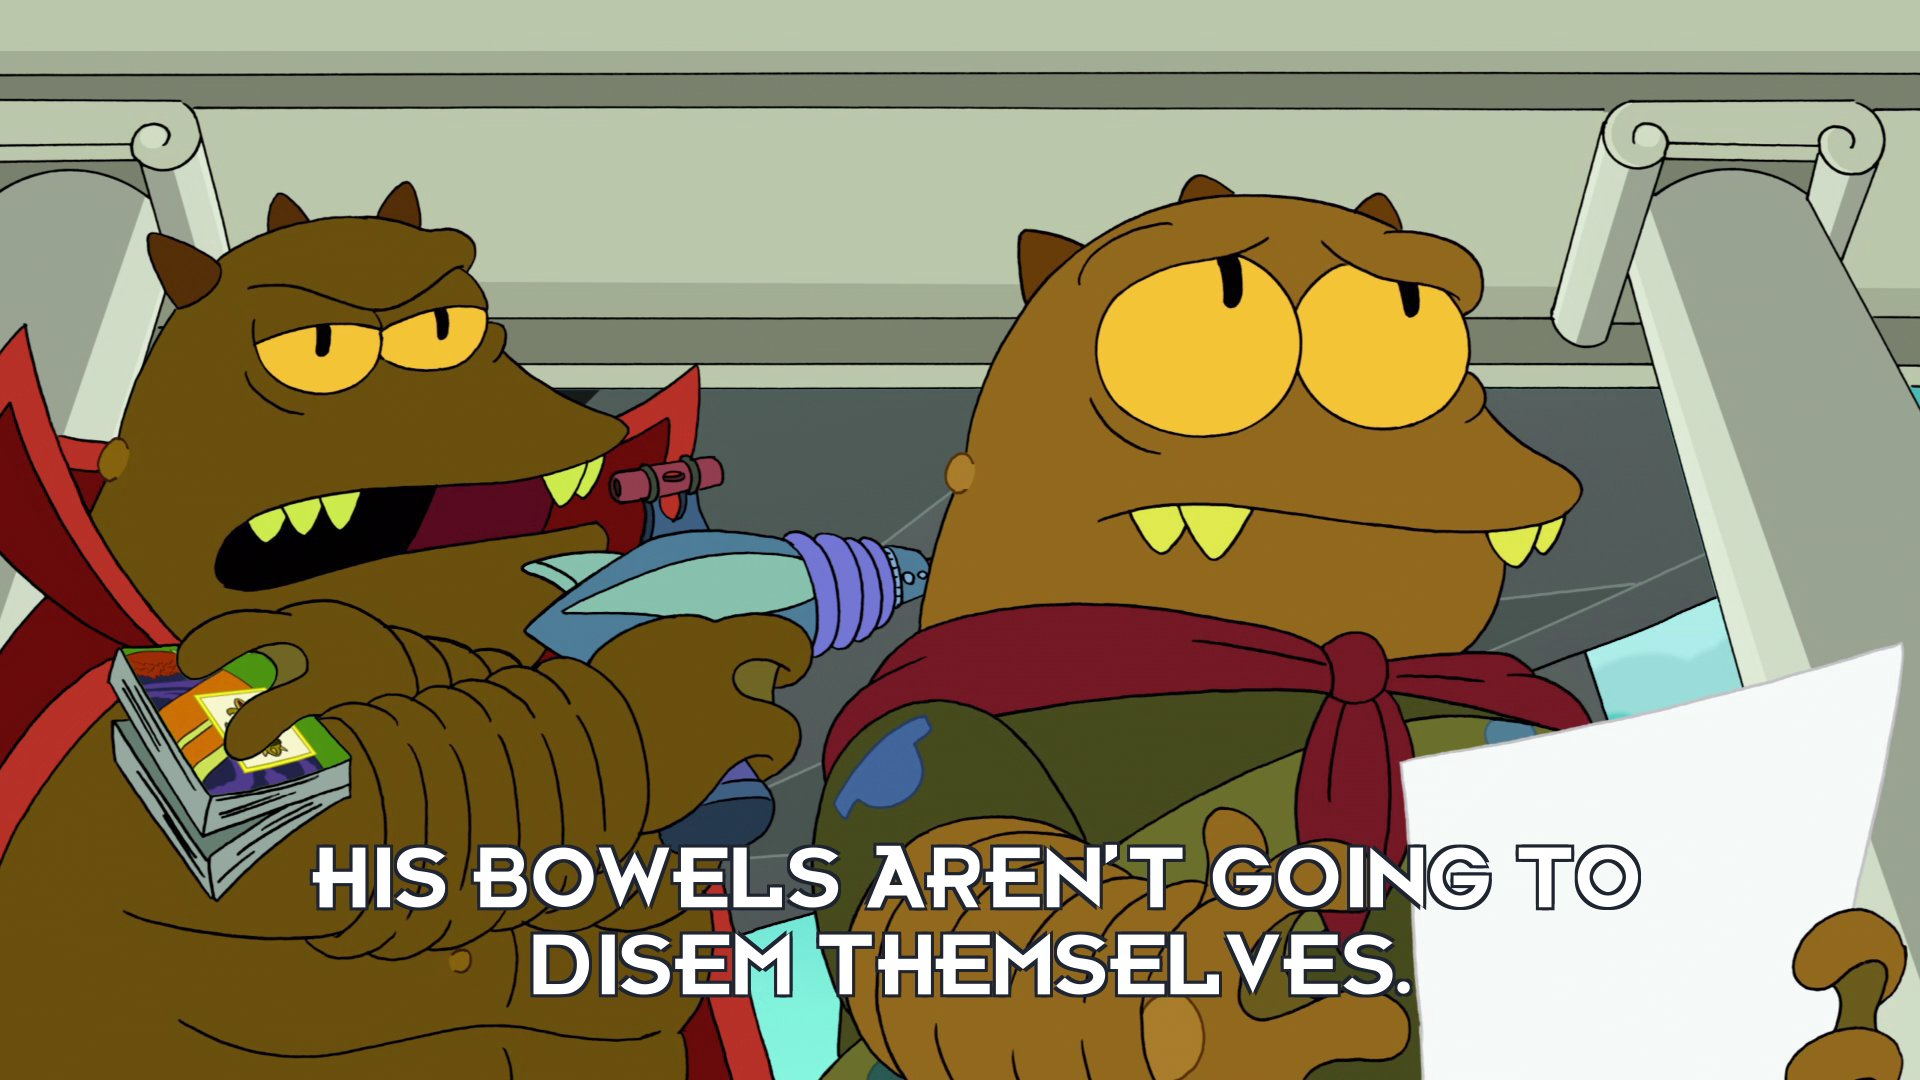 Lrrr: His bowels aren't going to disem themselves.